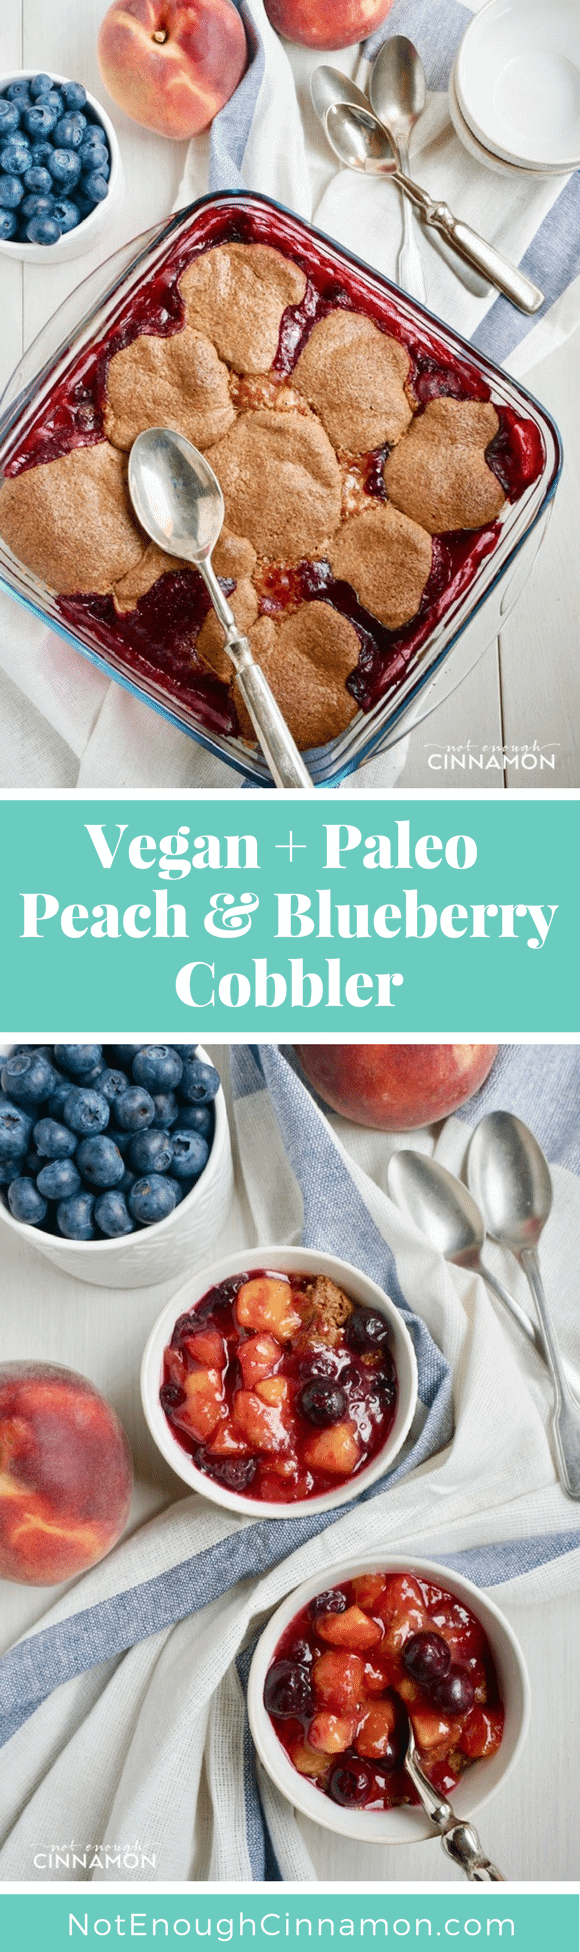 Peach Blueberry Cobbler ( Vegan & Paleo) Fresh blueberries and ripe peaches are tossed with some lemon juice and maple syrup, then covered with a sweet speculoos biscuit topping and baked until bubbly. This stonefruit cobbler screams summer! #summerdesserts, #cobbler, #paleorecipes, #vegandesserts, #speculoos